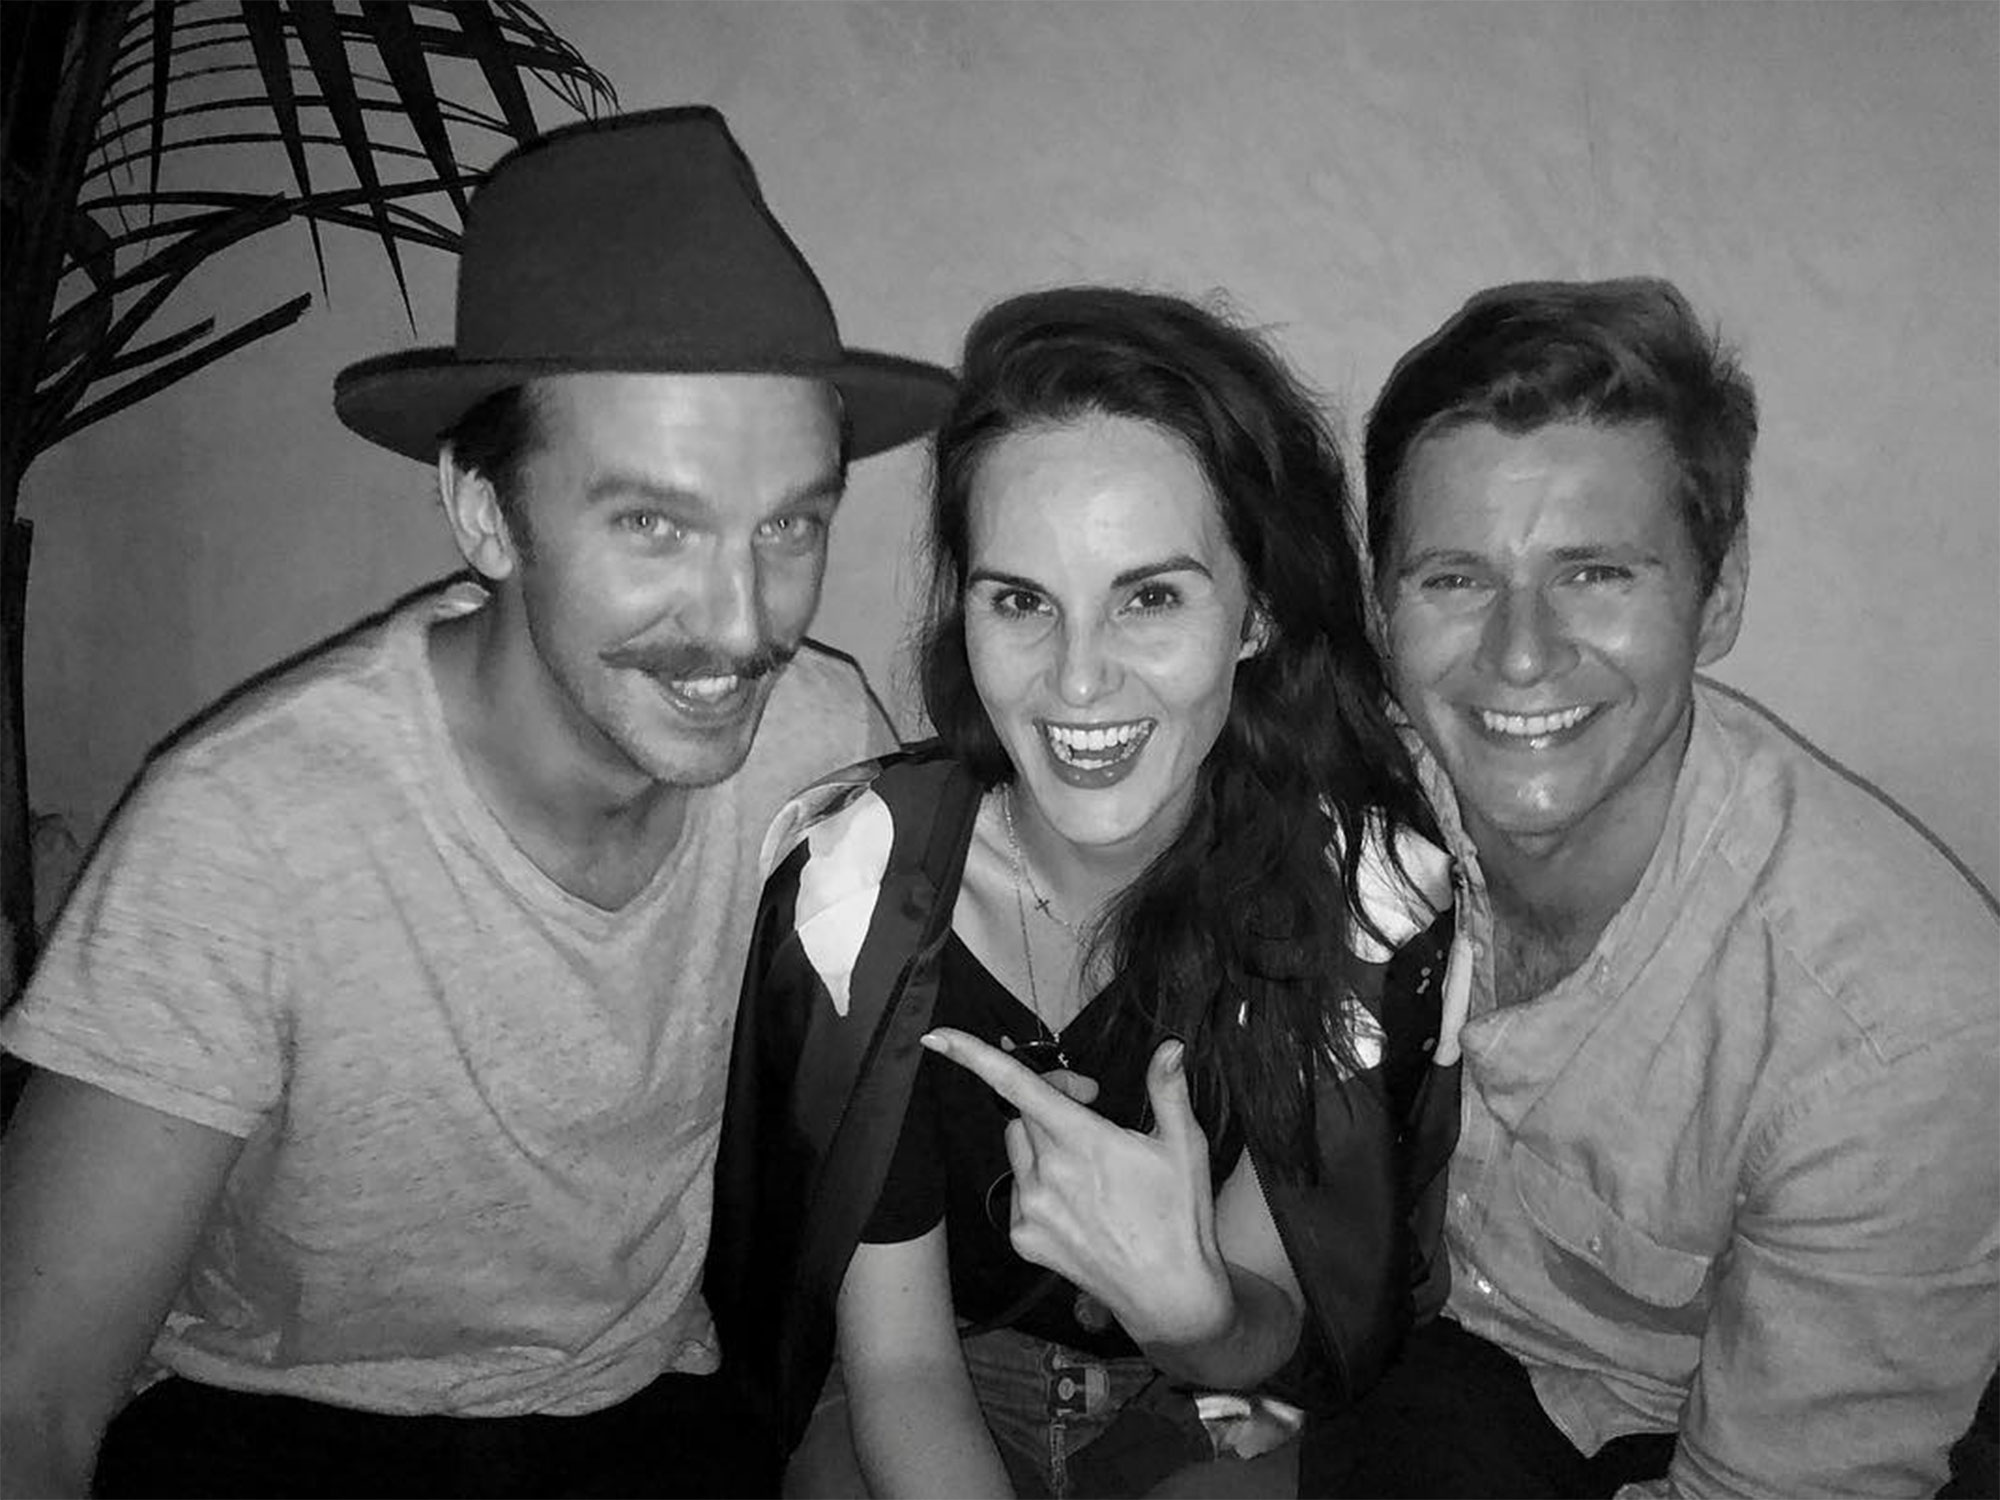 downtown abby costars reunite Michelle Dockery, Dan Stevens, and Allen Leech - These three! Michelle Dockery shared a photo hanging out with her former costars — Dan Stevens and Allen Leech — in August 2018.